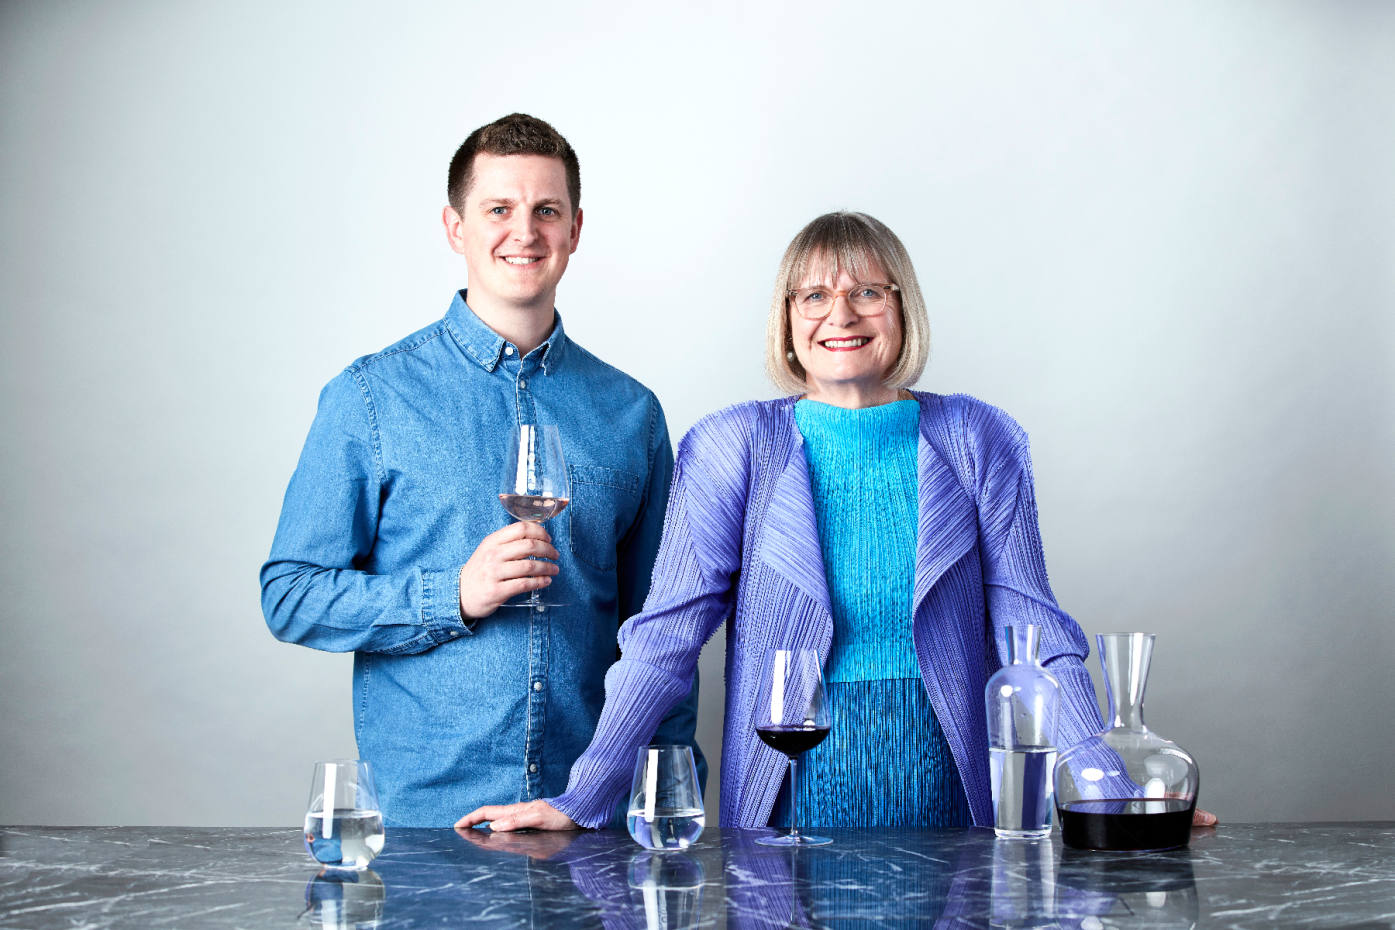 Jancis Robinson and Richard Brendon have joined forces to create superlative glassware